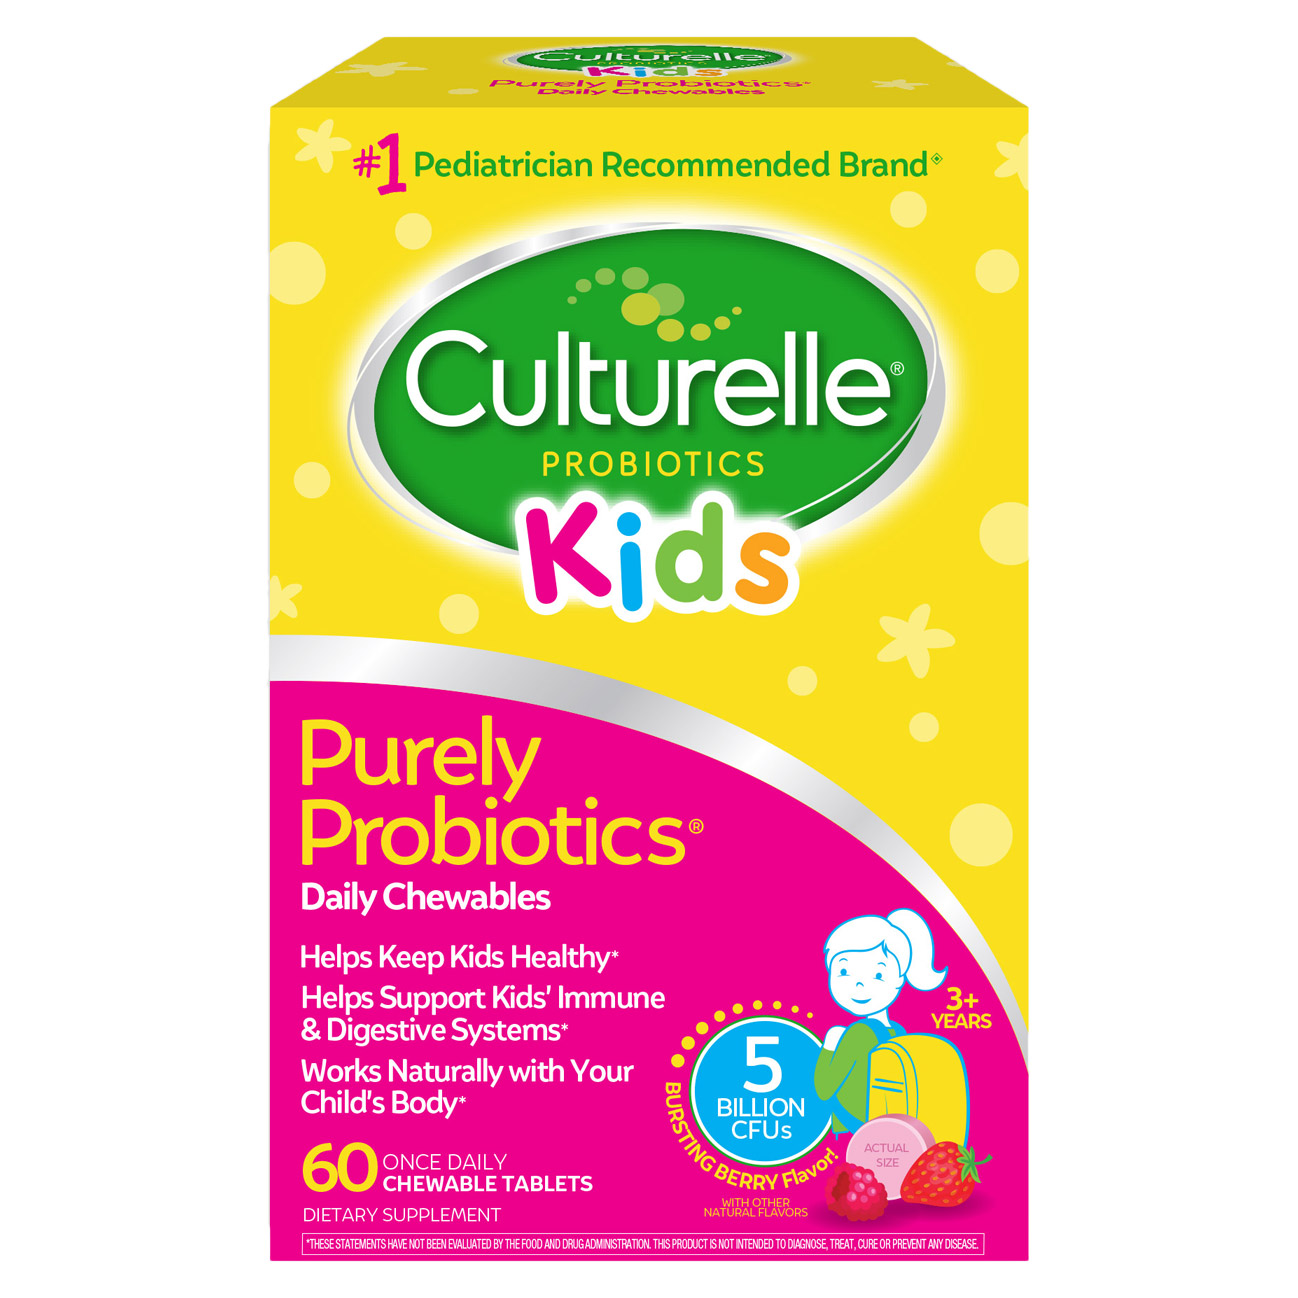 康萃乐儿童益生菌咀嚼片 Culturelle Kids Chewables Probiotic